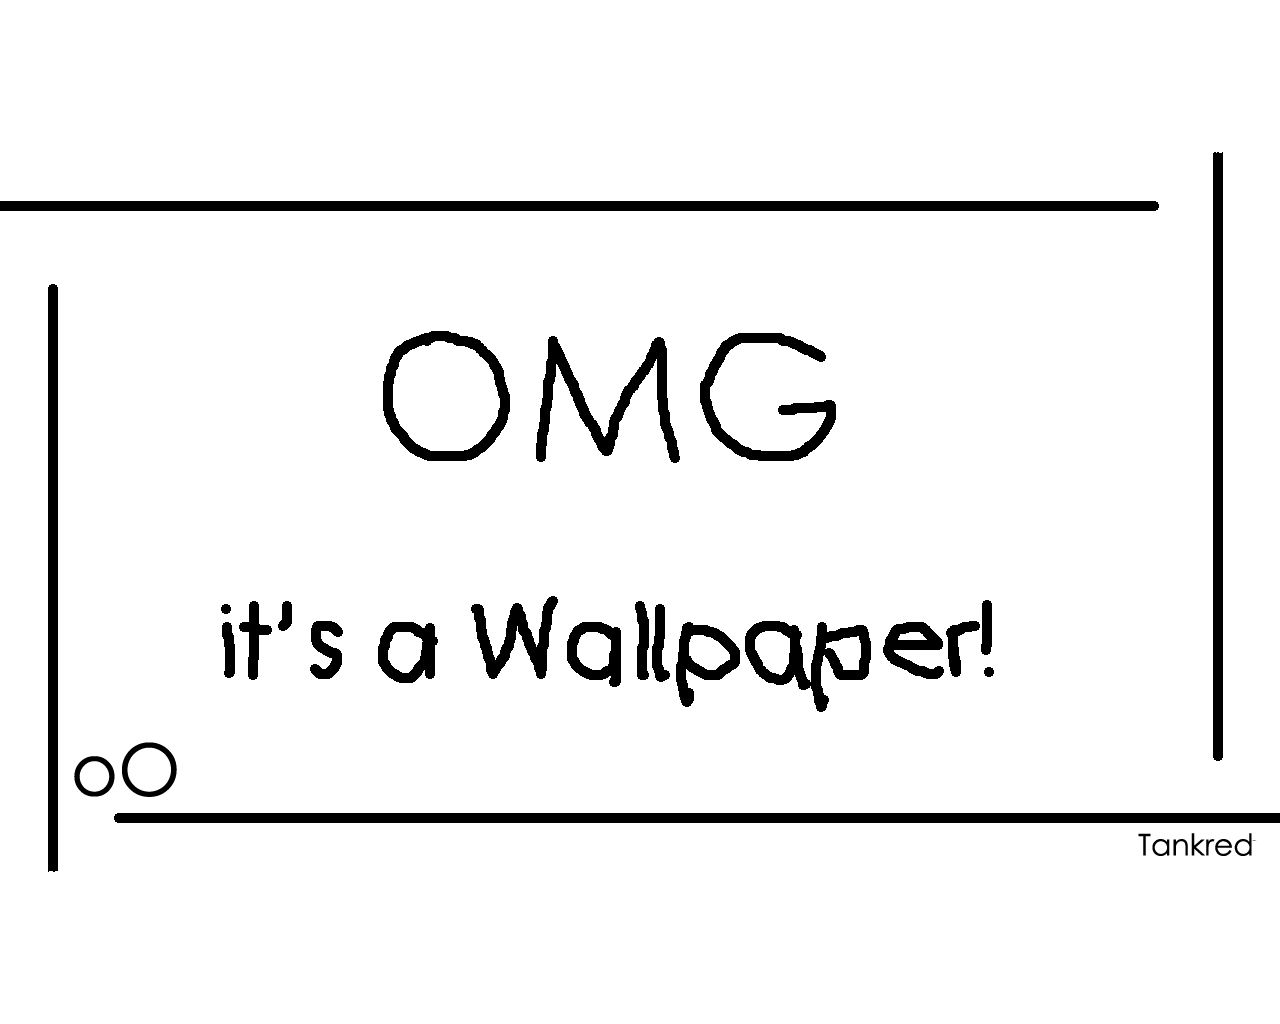 1280x1024 OMG Wallpapers Group 1280x1024